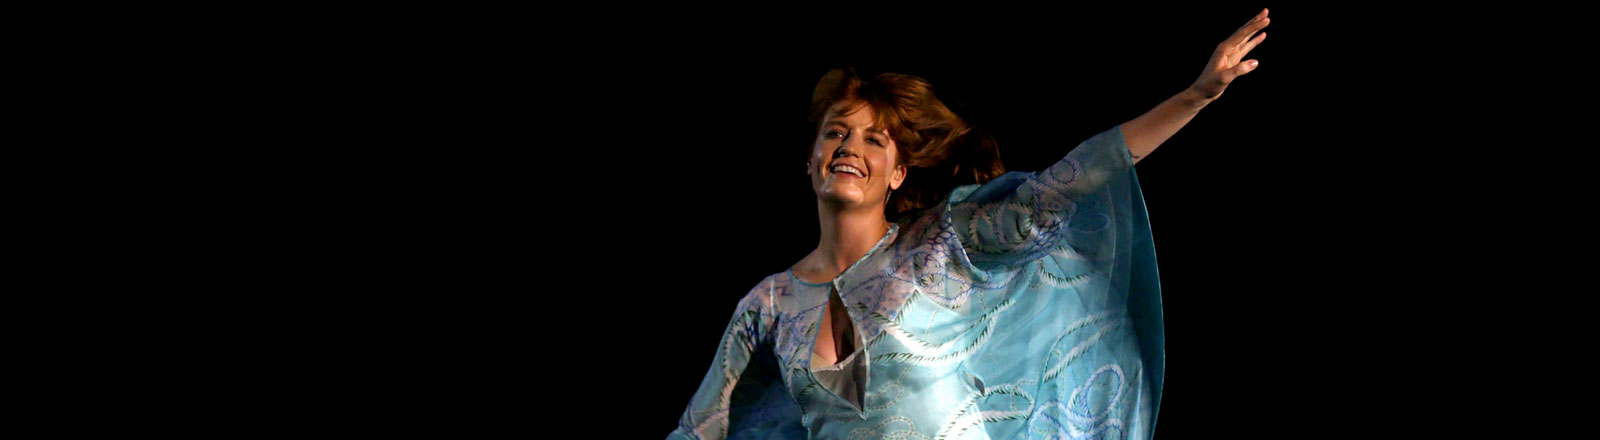 Florence Welch von Florence and the Machine bei einem Konzert in Rio.